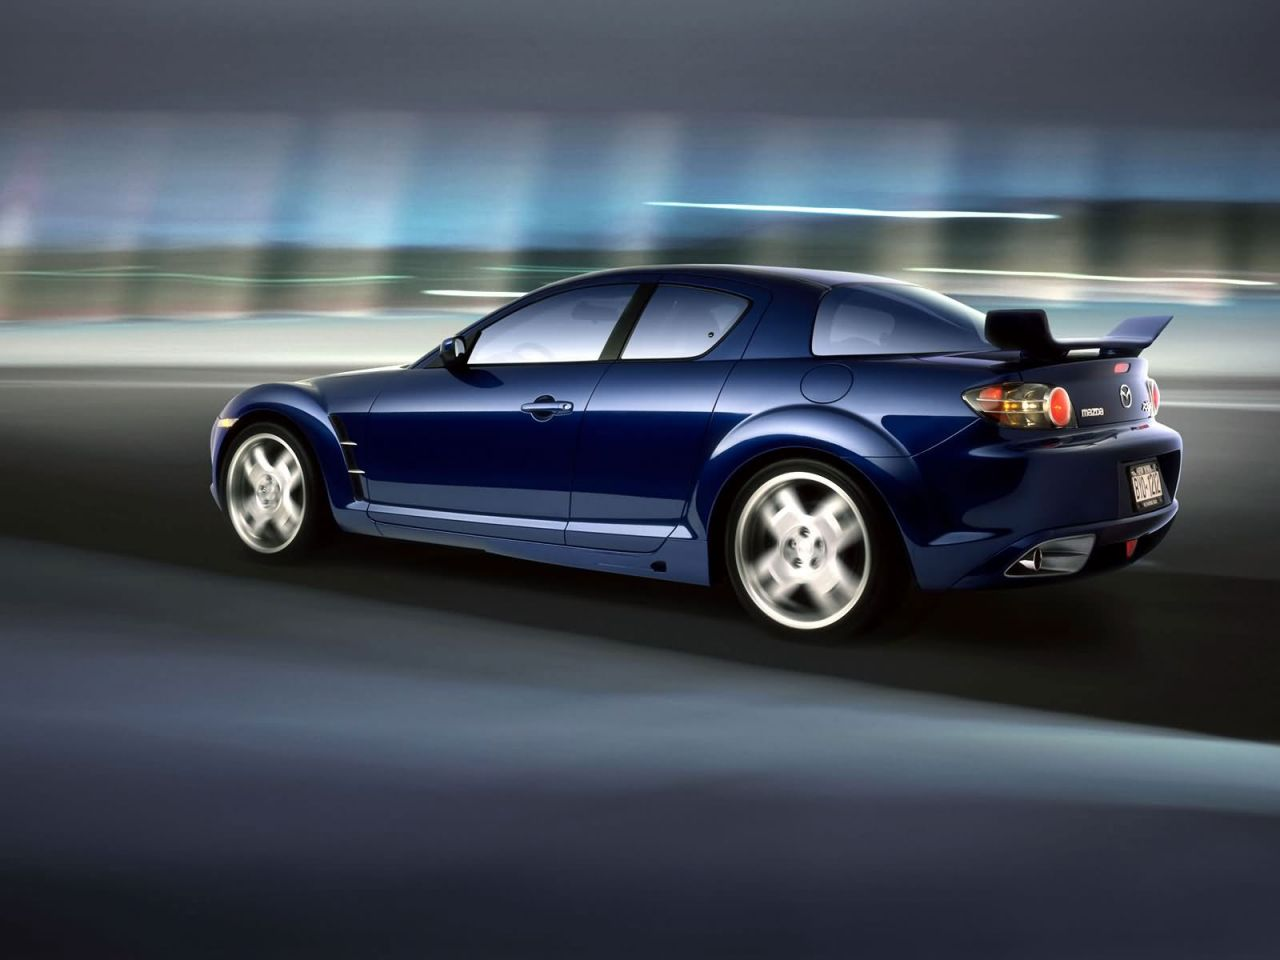 Mazda Rx8 Moving Blurred Background Wallpaper 1280x960